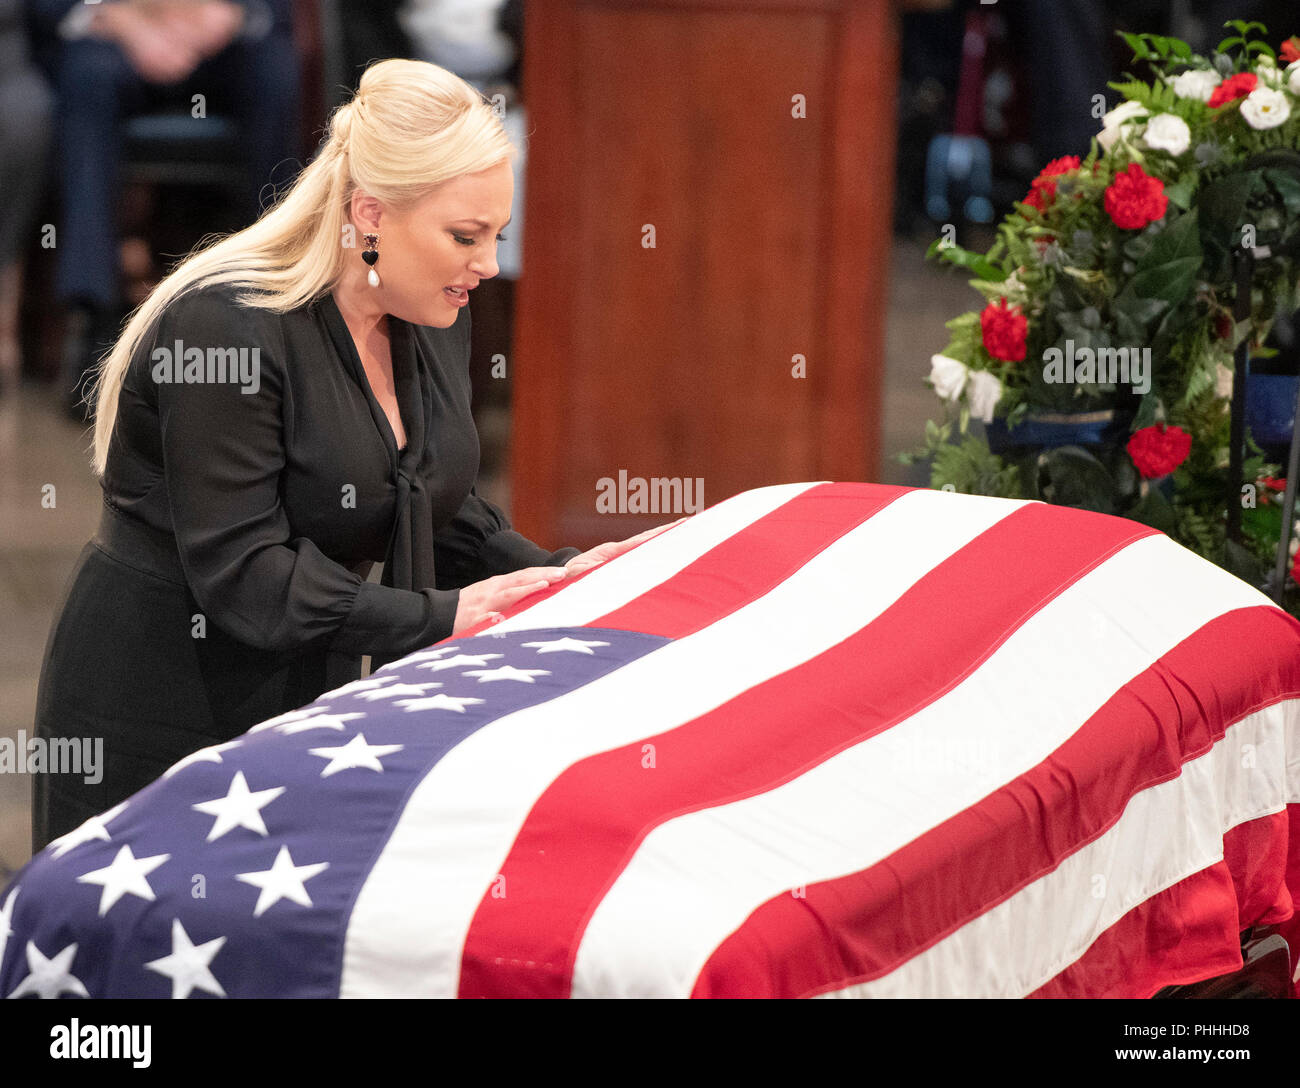 Meghan Mccain Will Be Next Conservative On The View: Meghan Mccain Stock Photos & Meghan Mccain Stock Images